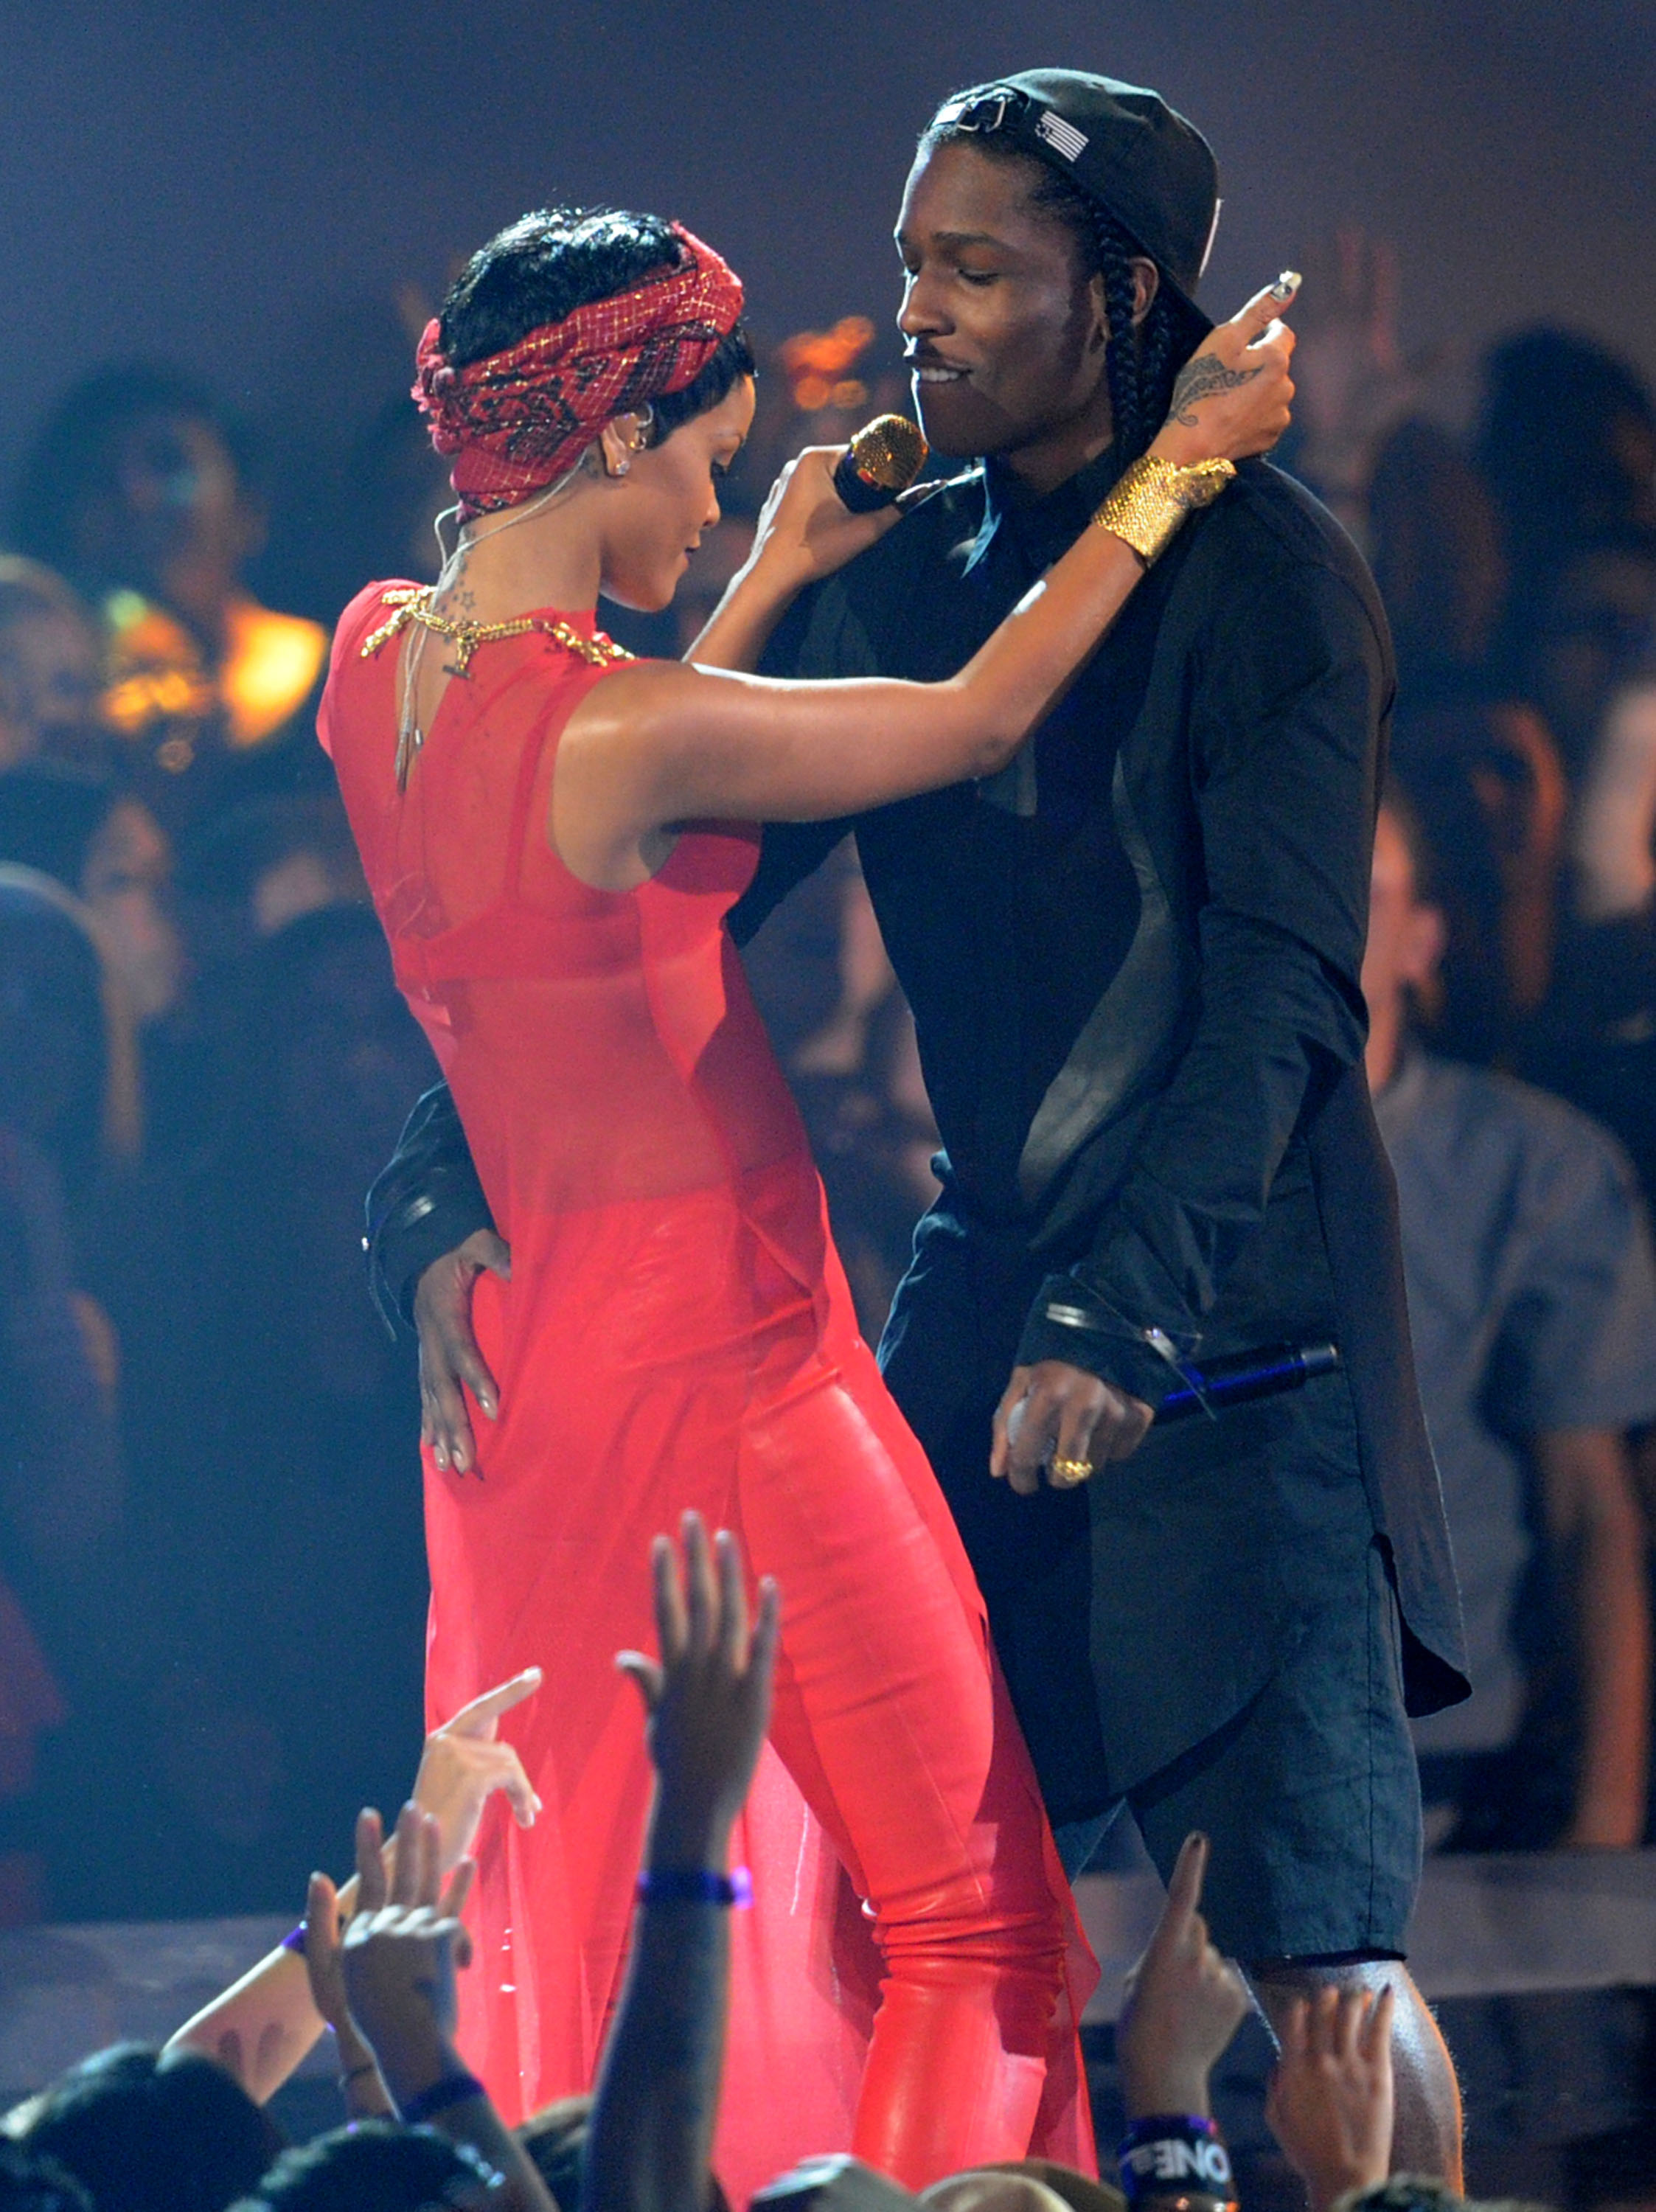 Asap rocky dating rihanna - ITD World